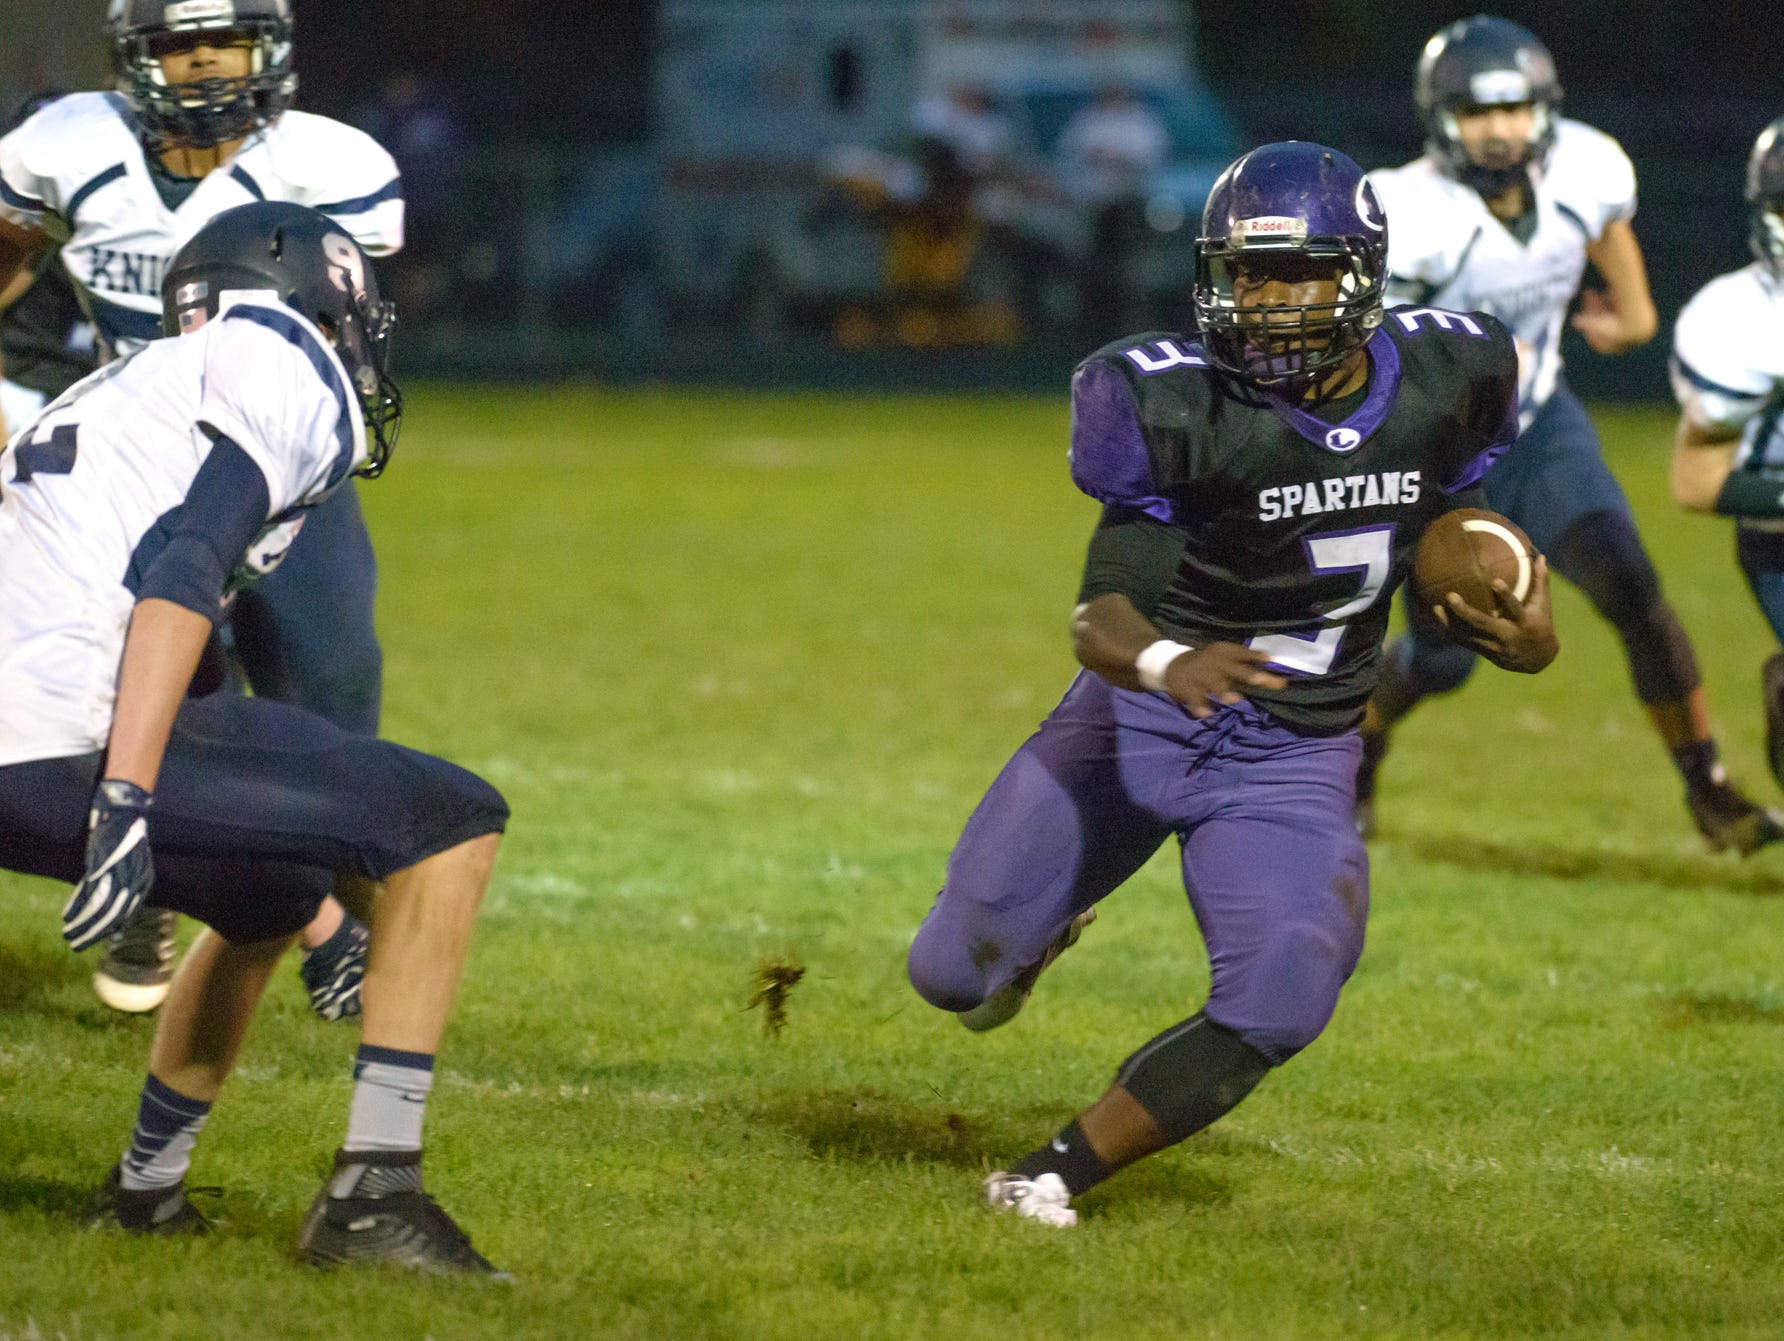 Lakeview running back Jay'Vion Settles had a near-school record of 258 yards on 16 carries earlier this season.